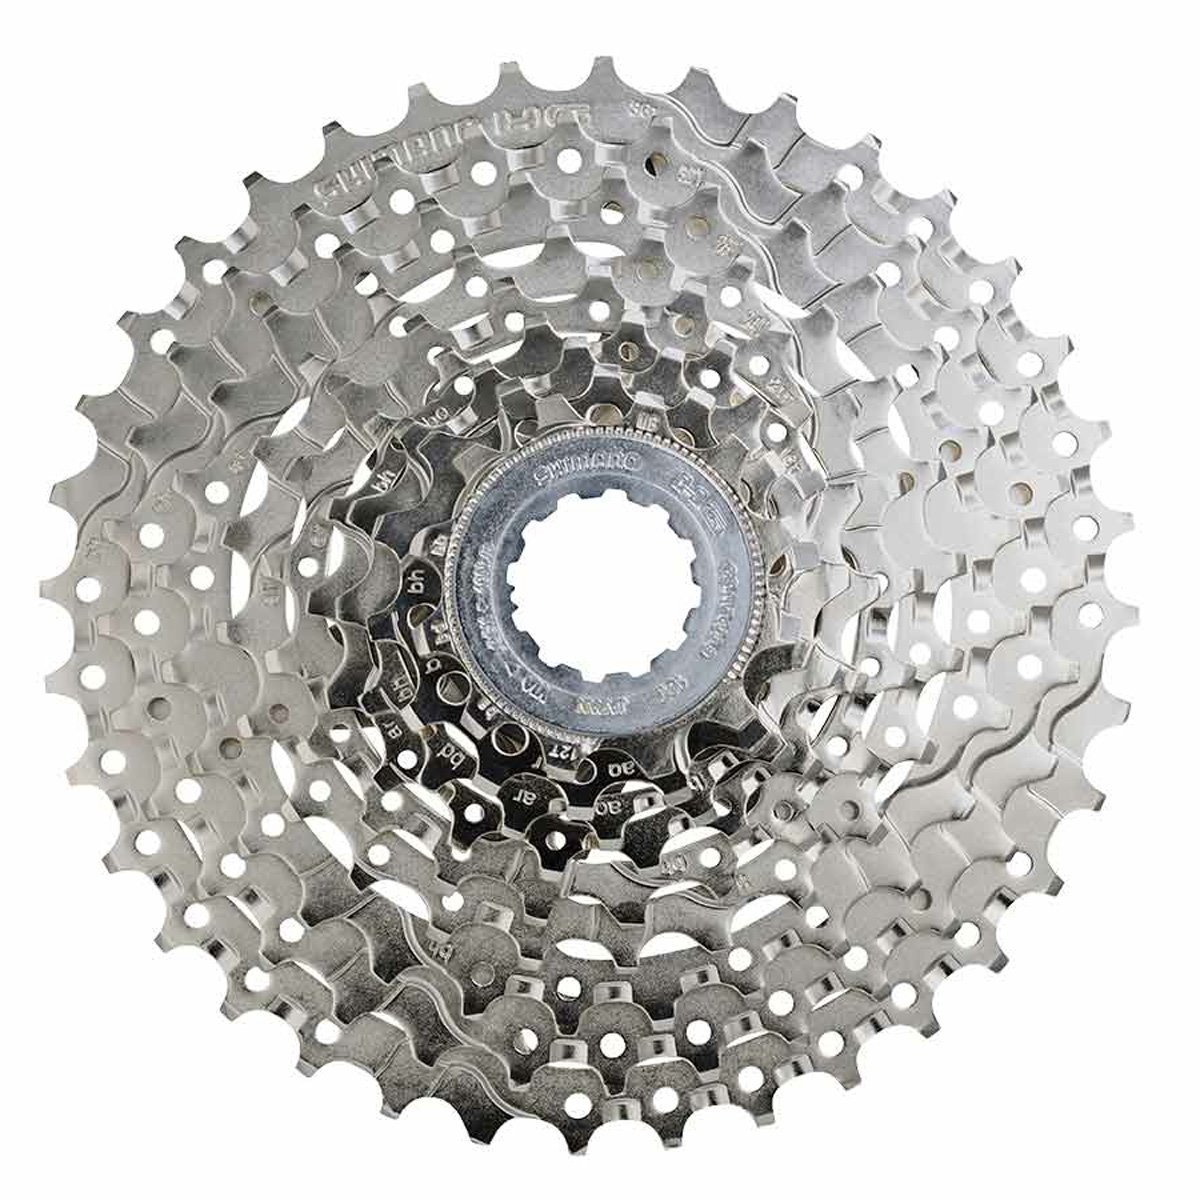 SHIMANO Deore CS-HG50-10 10 speed 11-36t Cassette// Sprocket